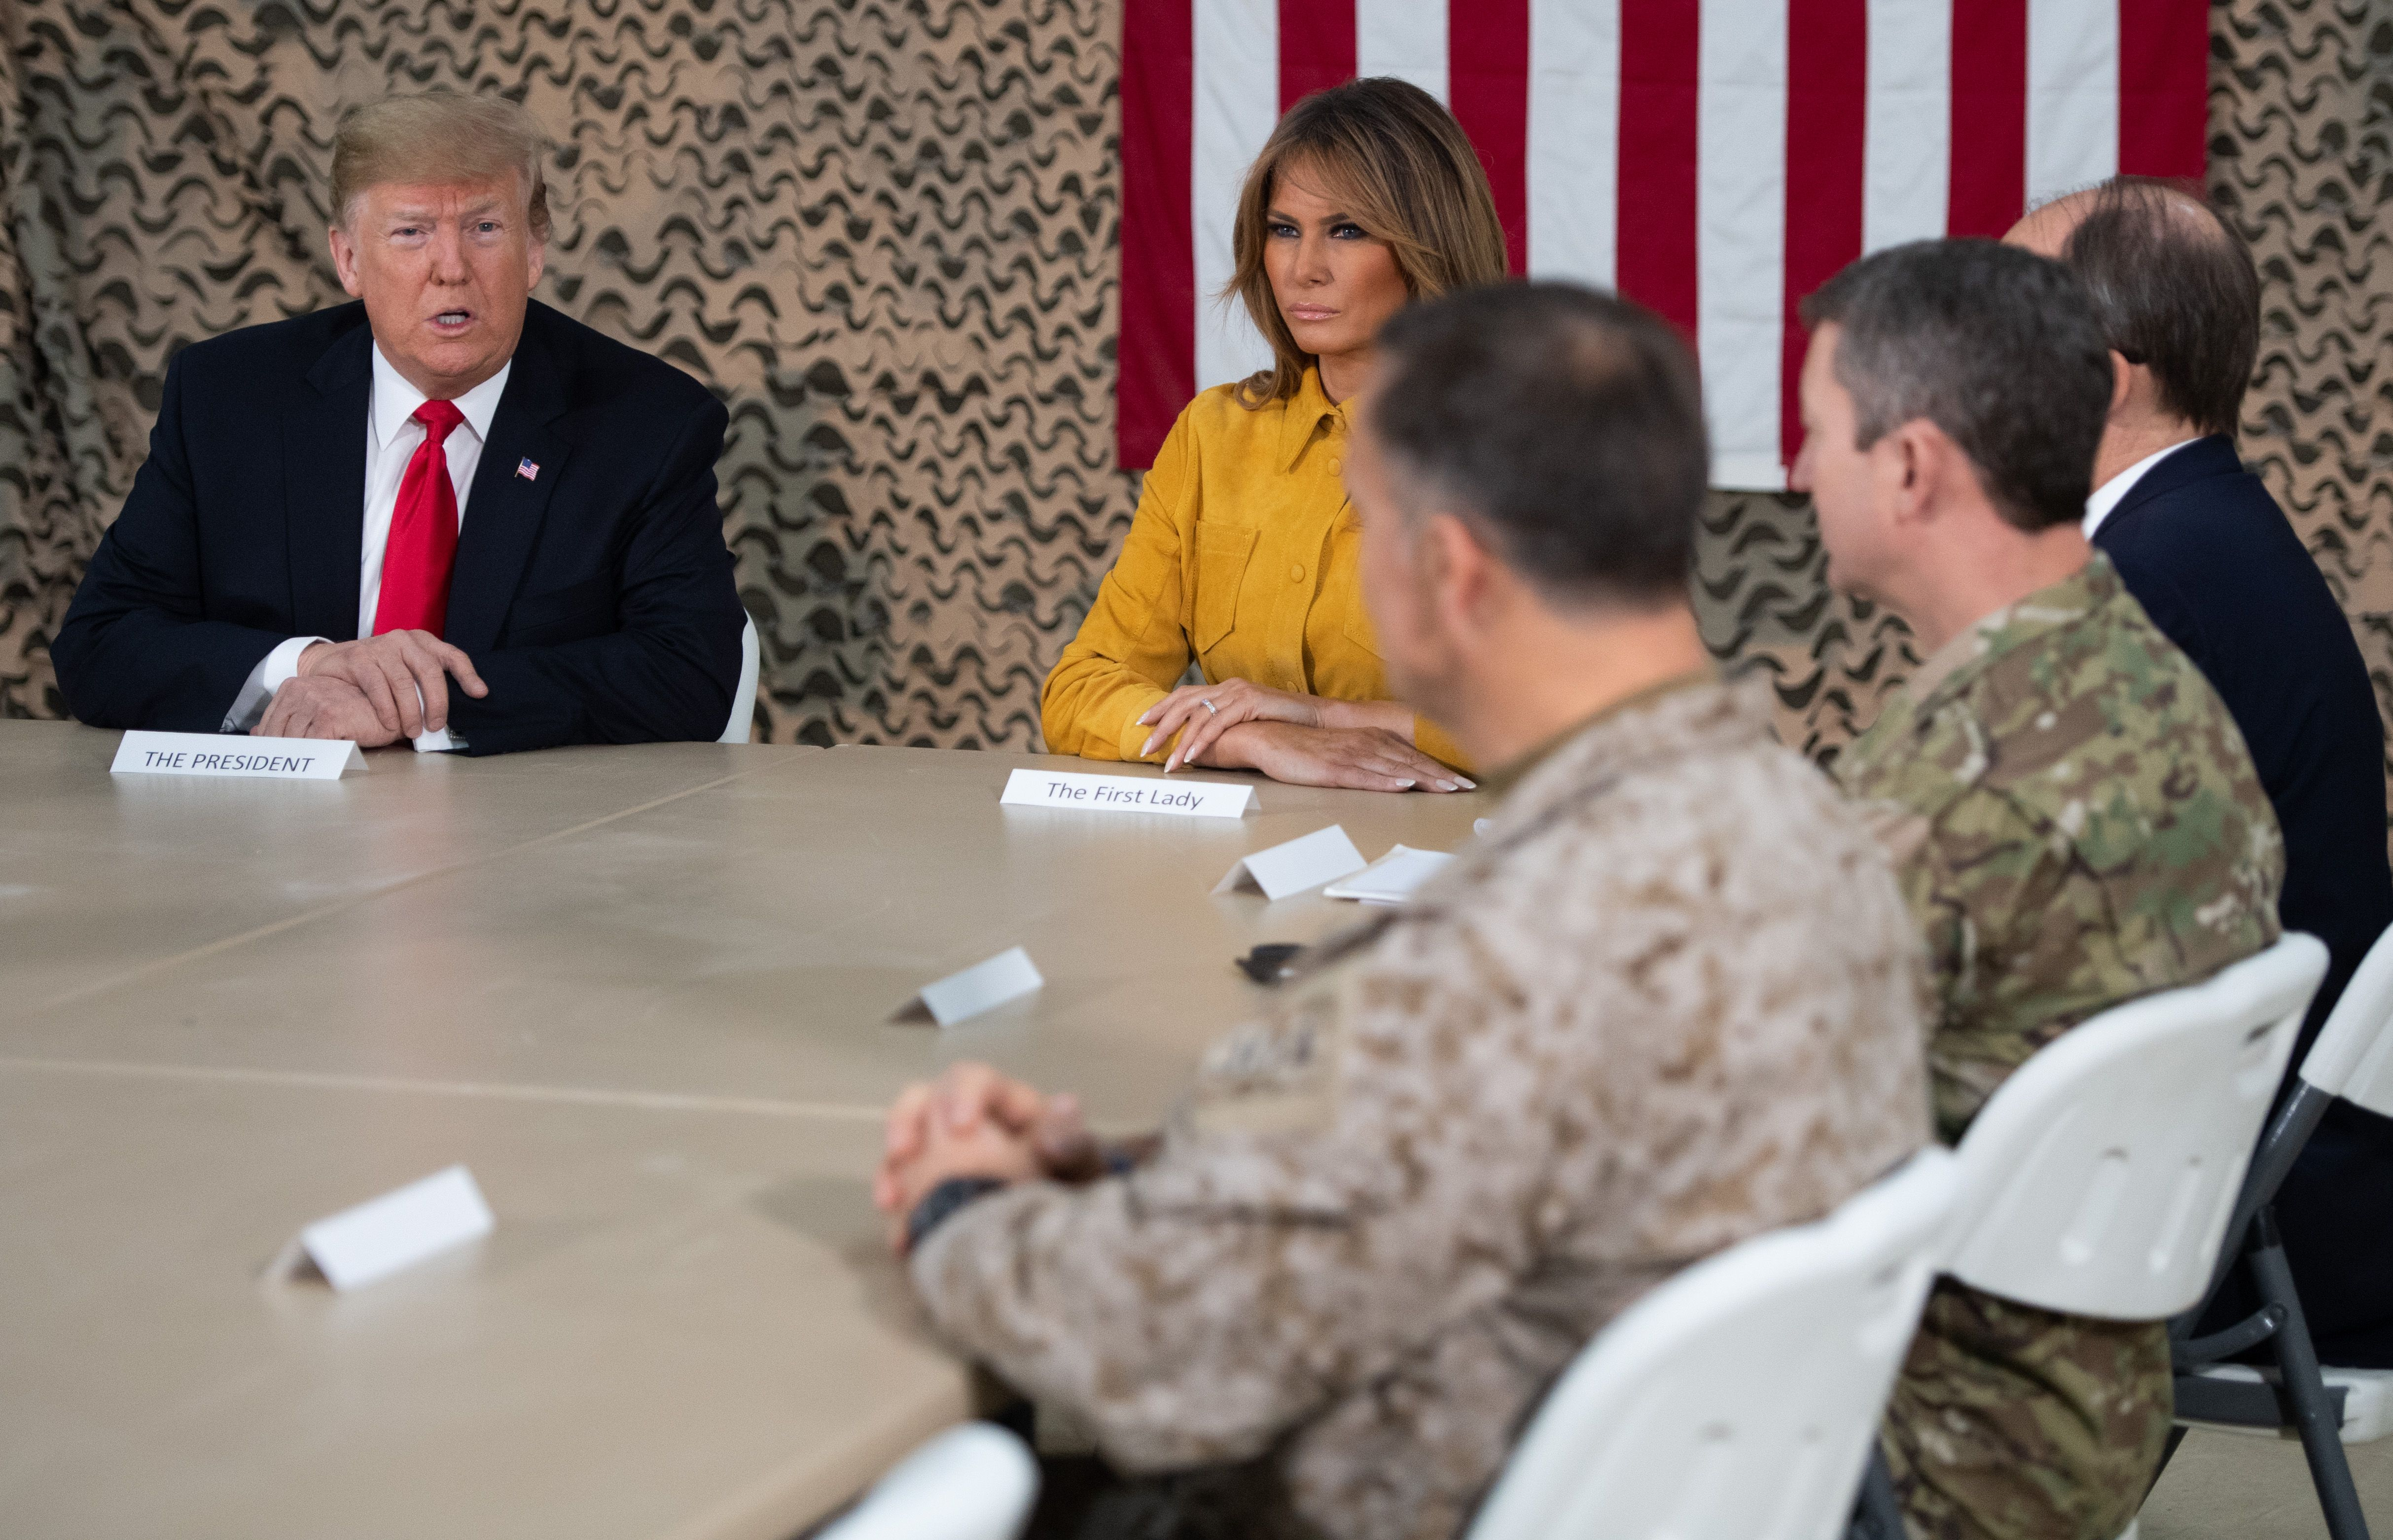 US President Donald Trump and First Lady Melania Trump attend a military briefing during an unannounced trip to Al Asad Air Base in Iraq on December 26, 2018. - President Donald Trump arrived in Iraq on his first visit to US troops deployed in a war zone since his election two years ago (Photo by SAUL LOEB/AFP/Getty Images)